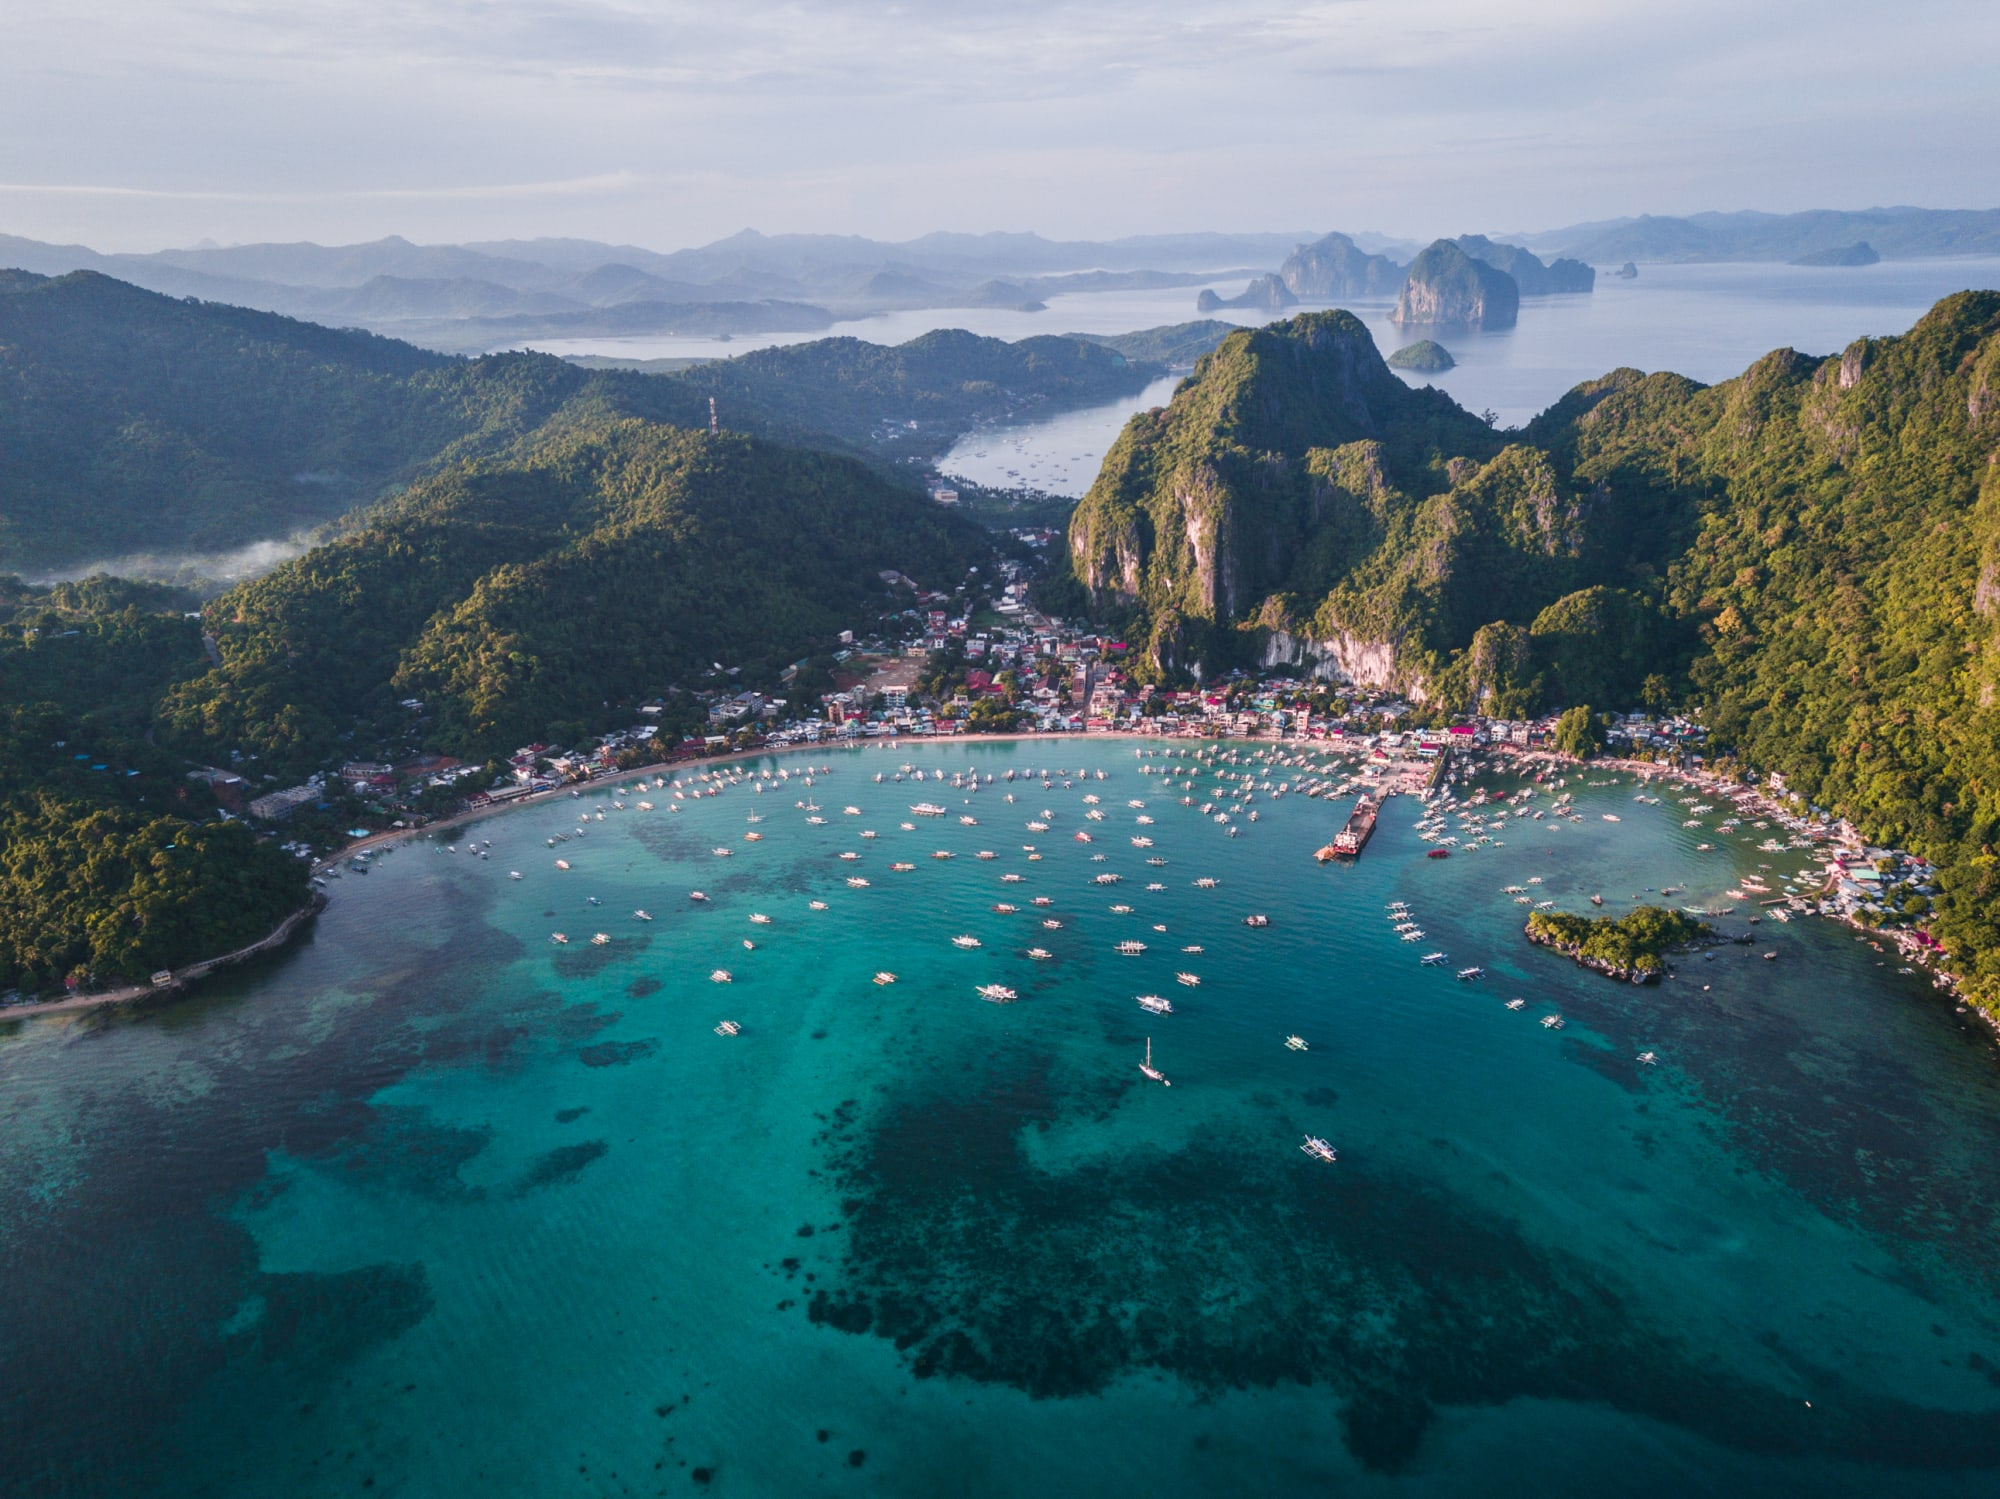 Philippines, Thailand, Mexico the biggest recouped gains when Tourism Resumes - Bloomberg Economics